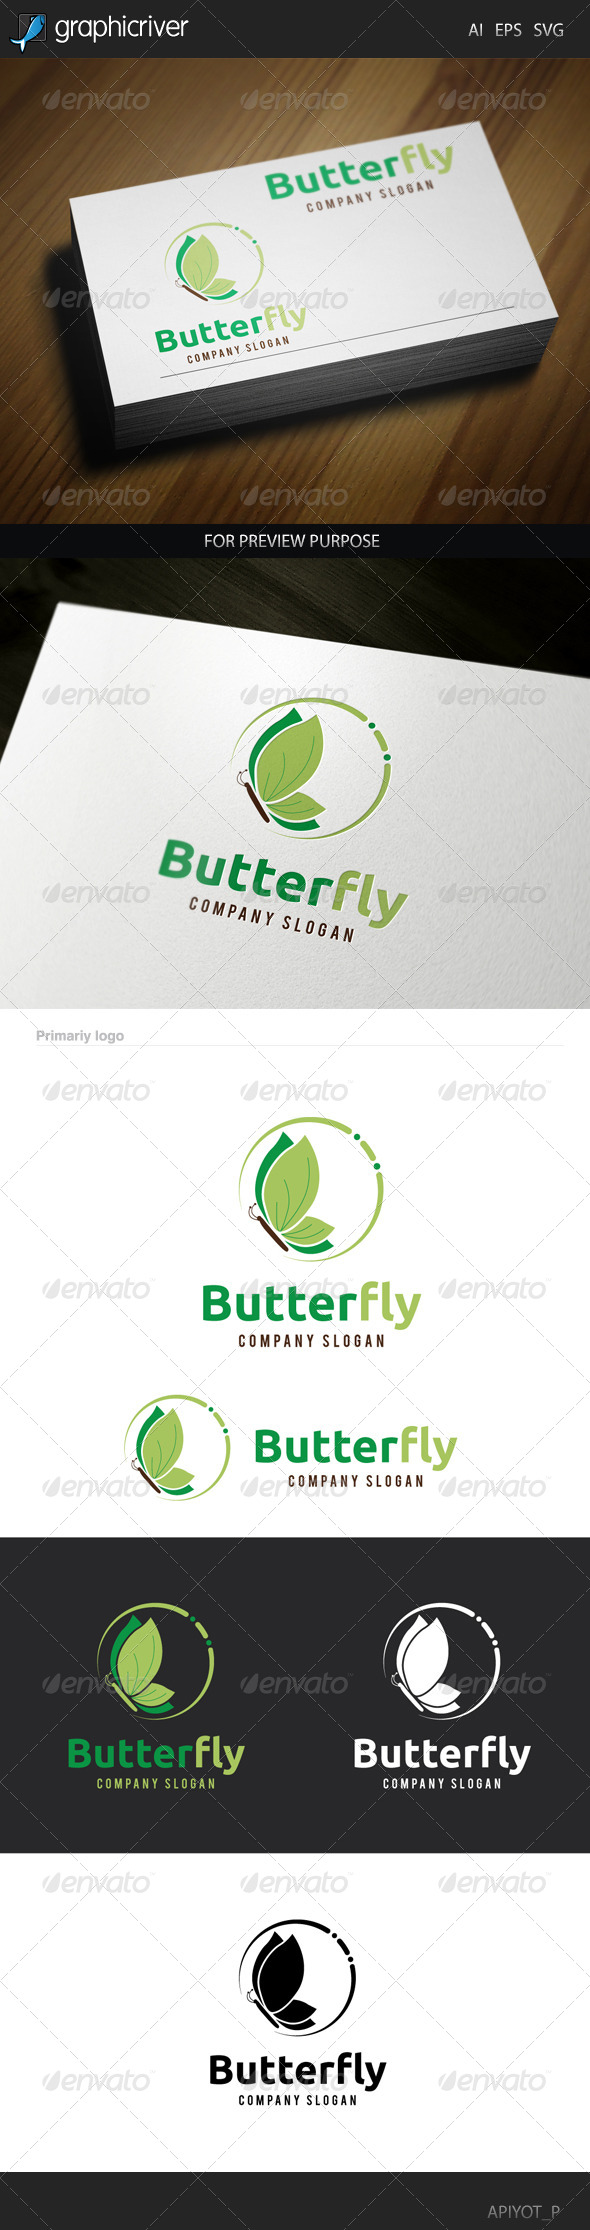 GraphicRiver ButterFly 2 Logo 8514762